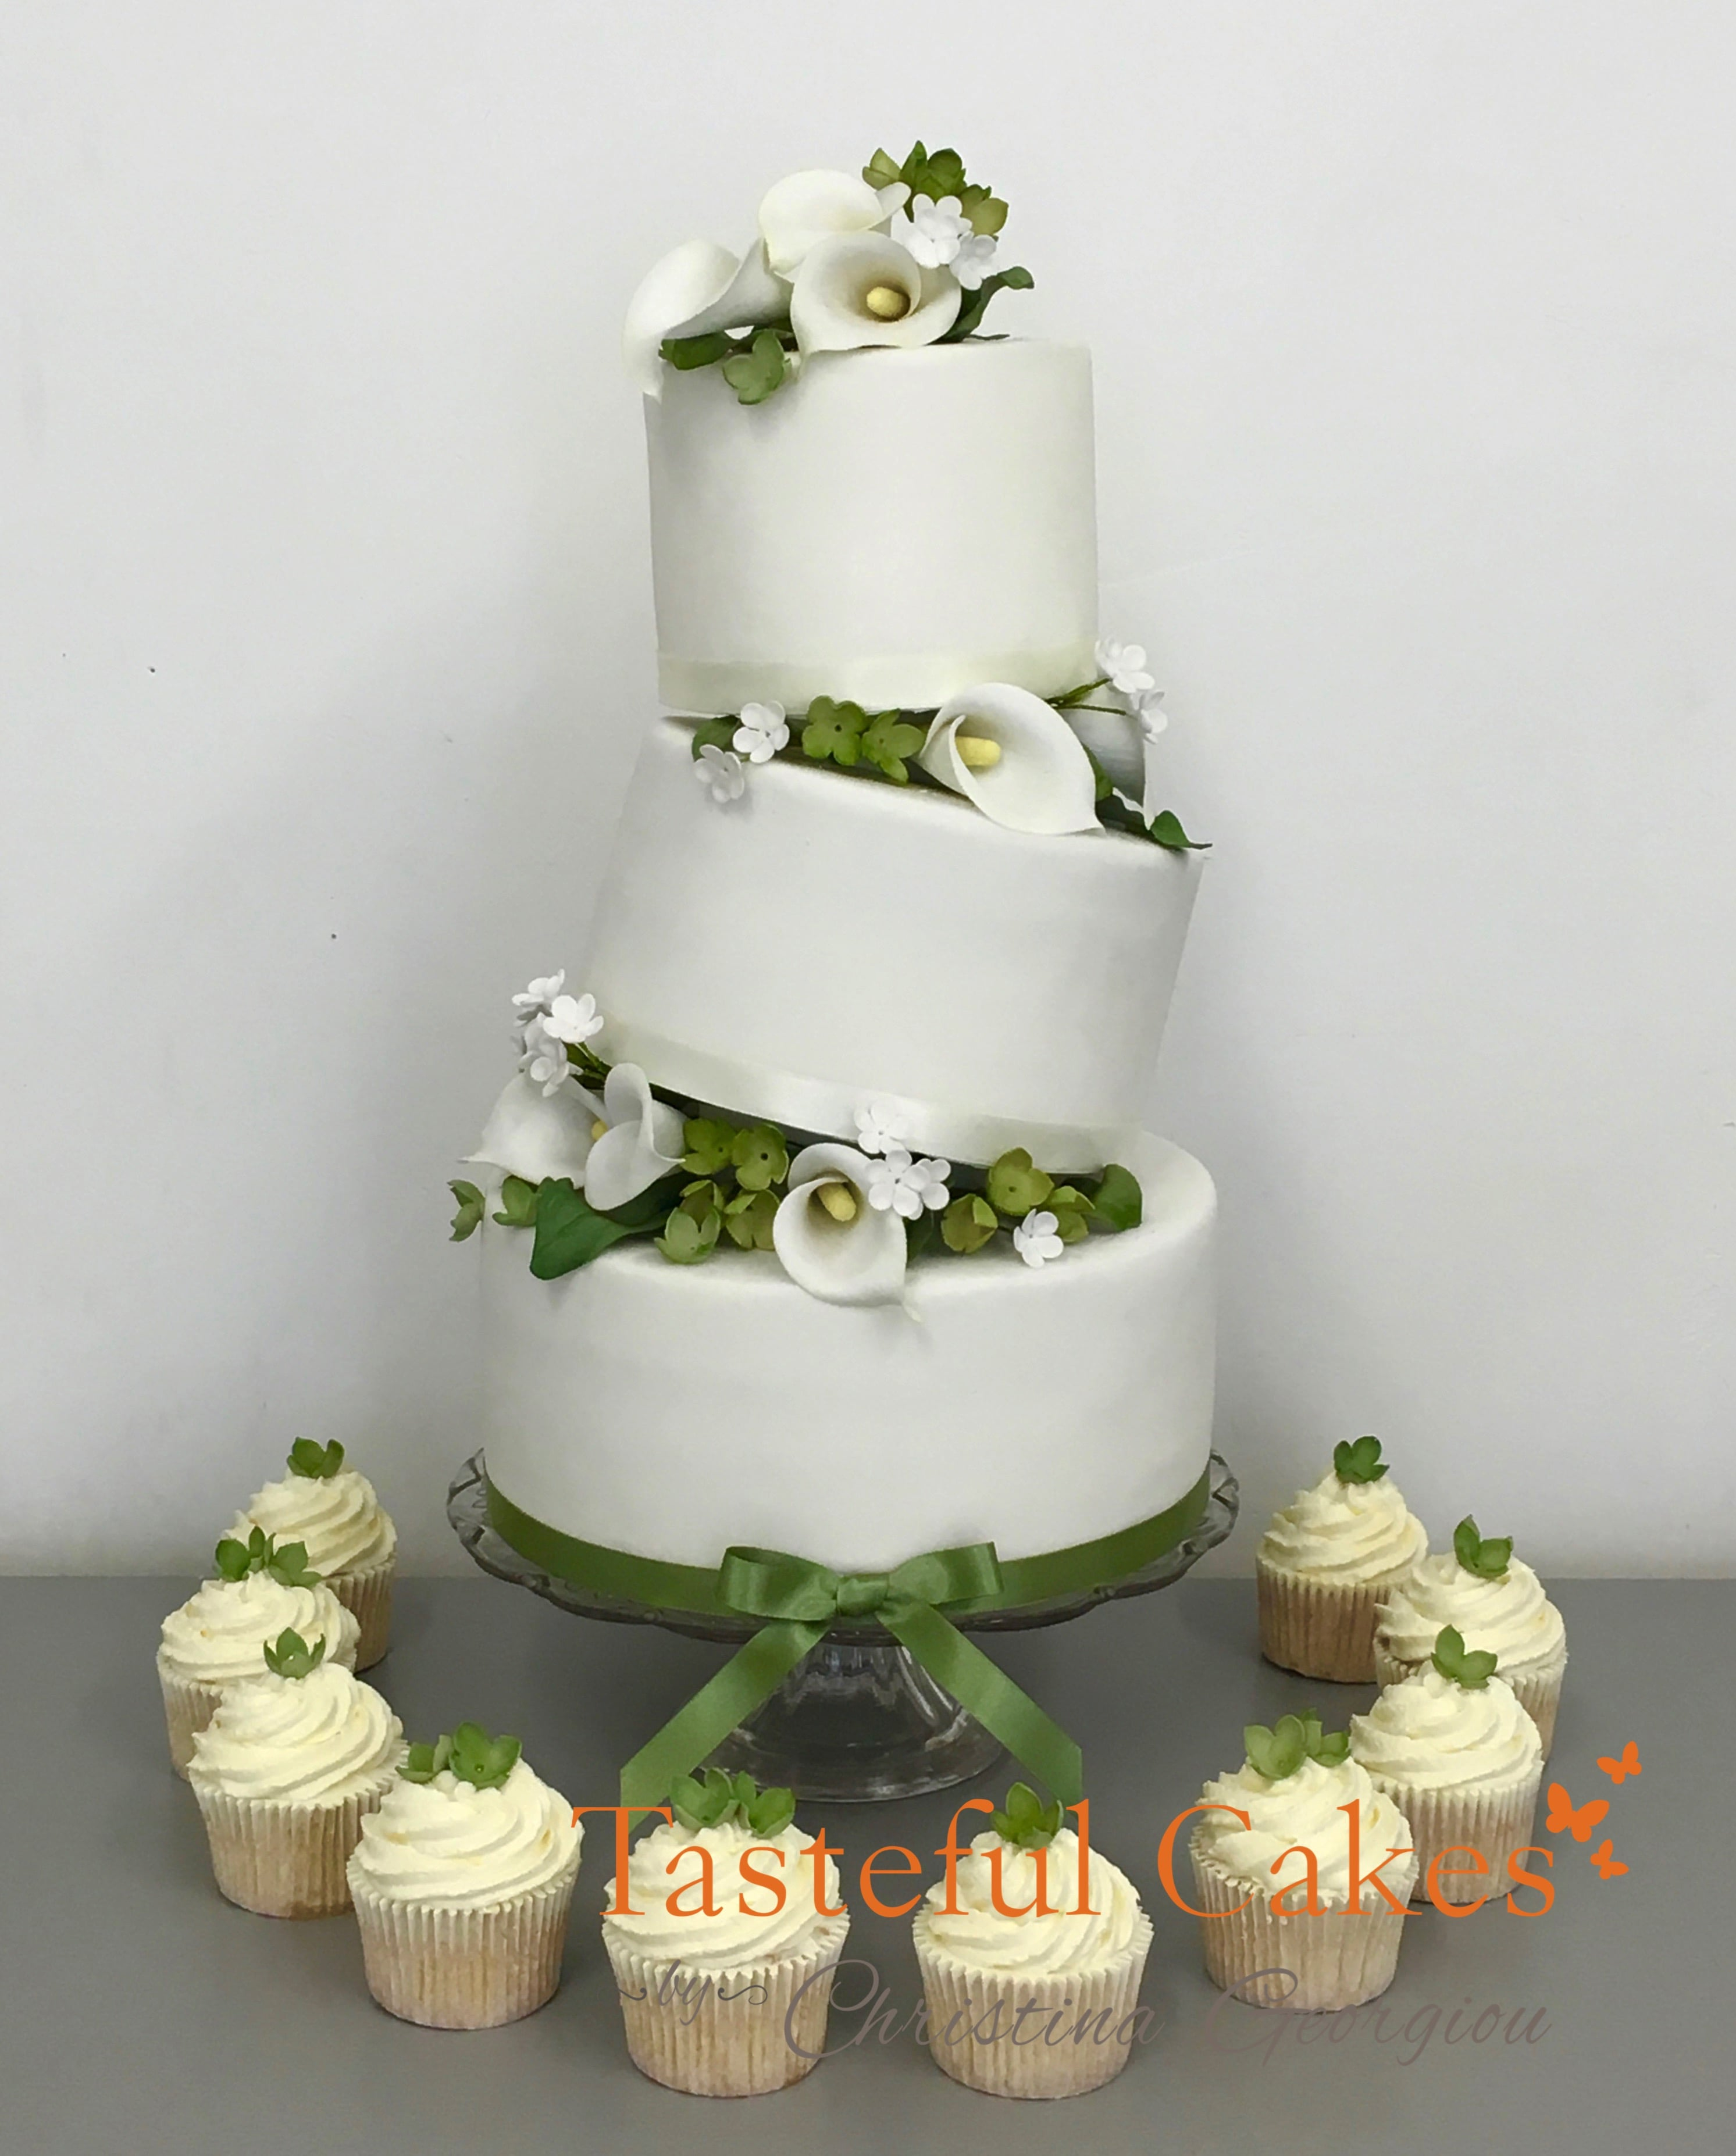 Tasteful Cakes By Christina Georgiou Floral Sage Green Wedding